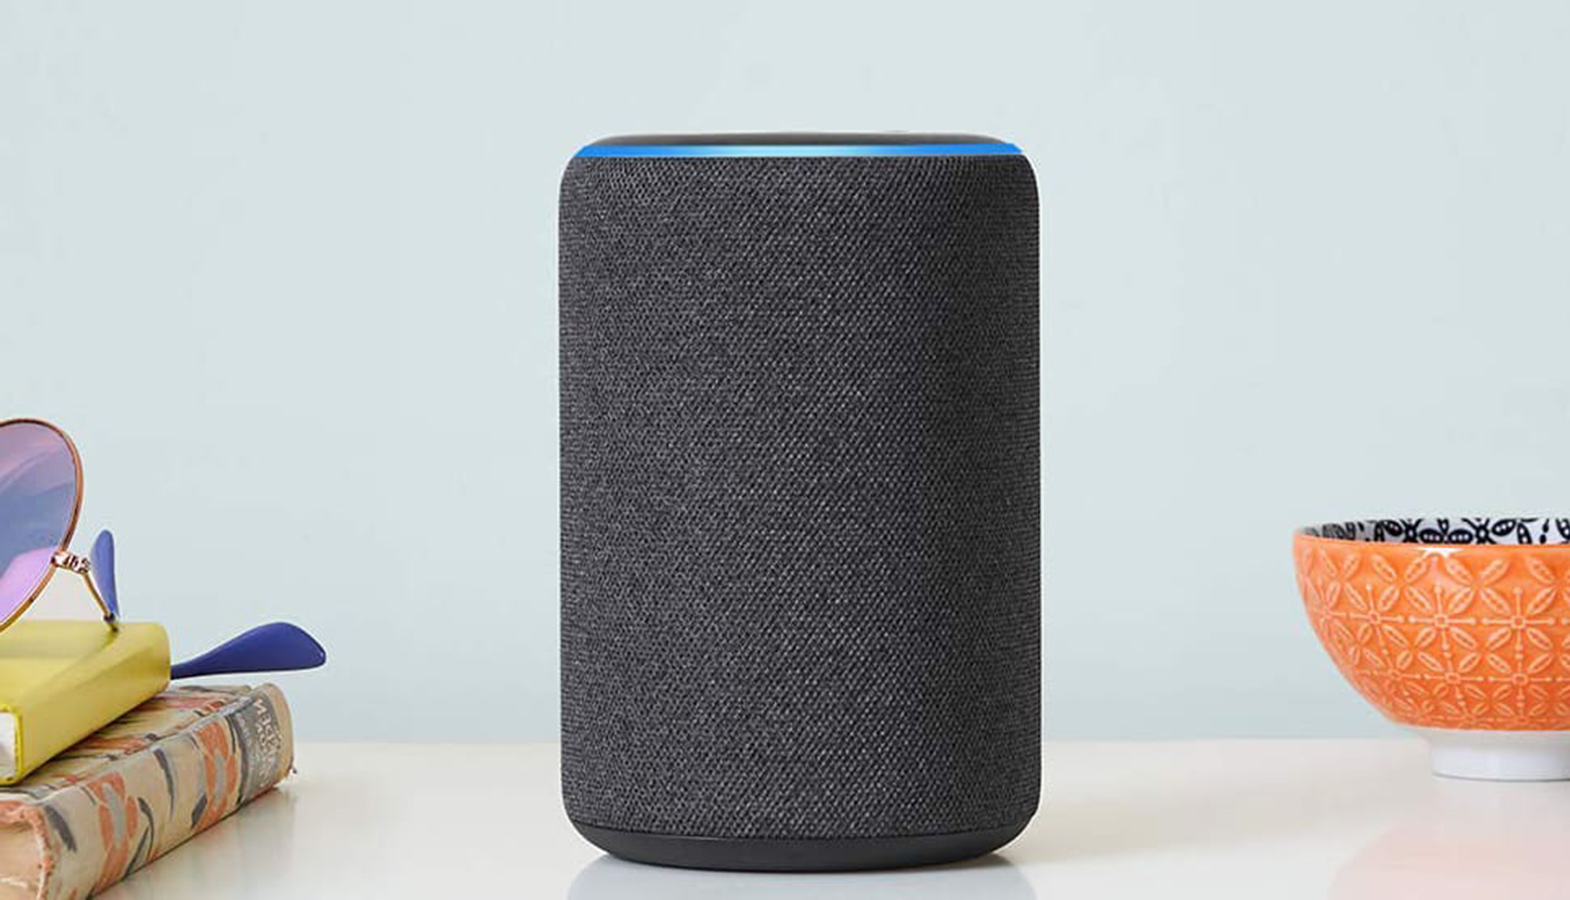 British Civil Servants Banned From Using Smart Speakers